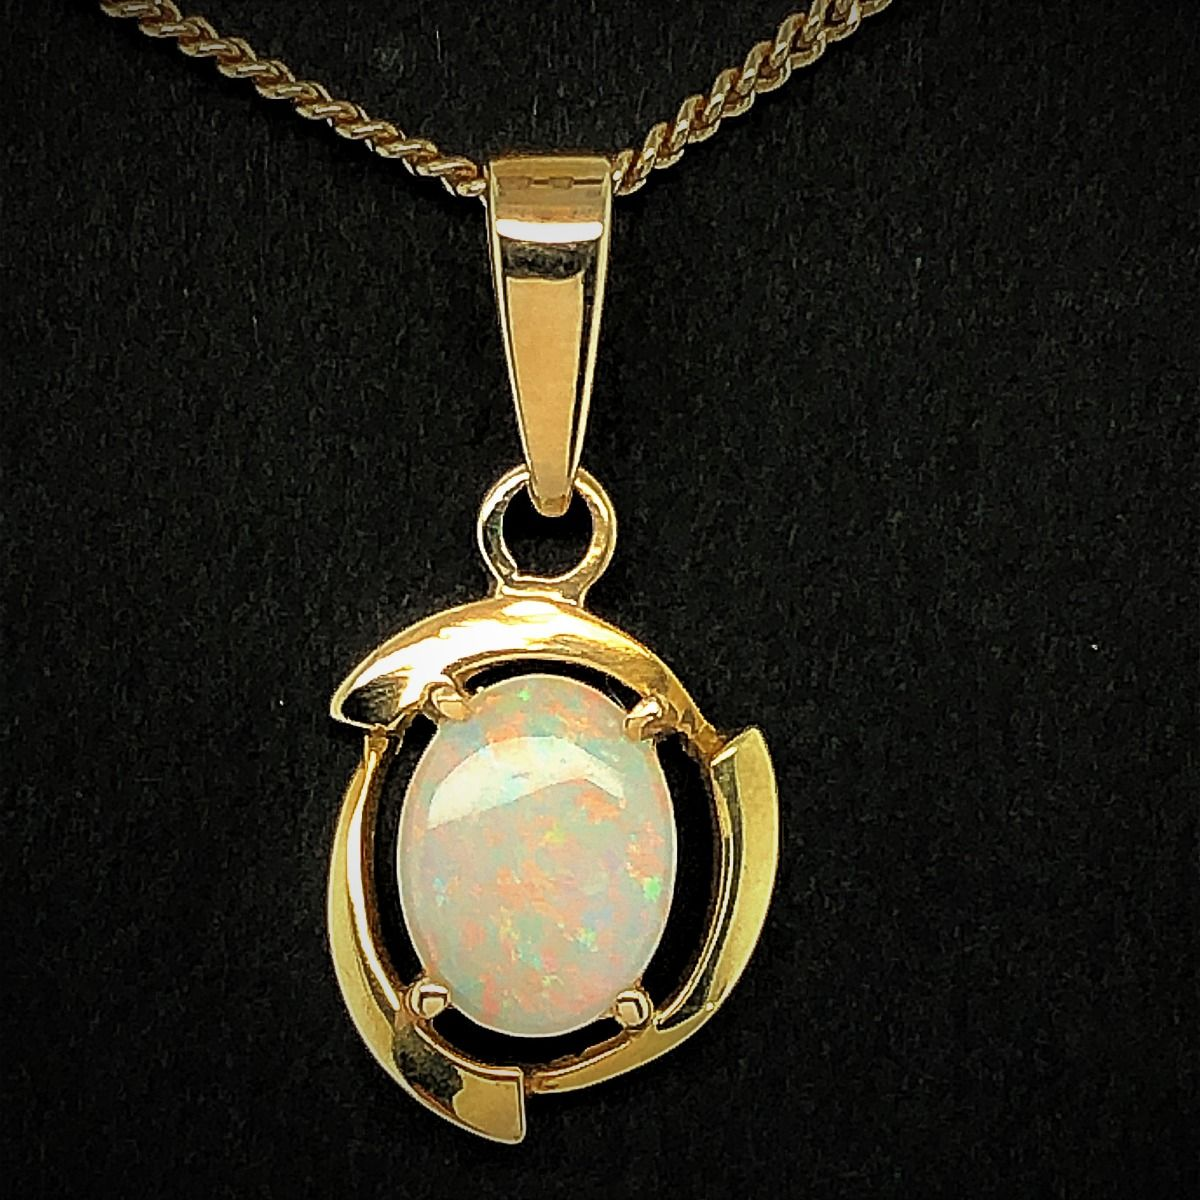 18ct gold solid opal pendant (8mmx6)